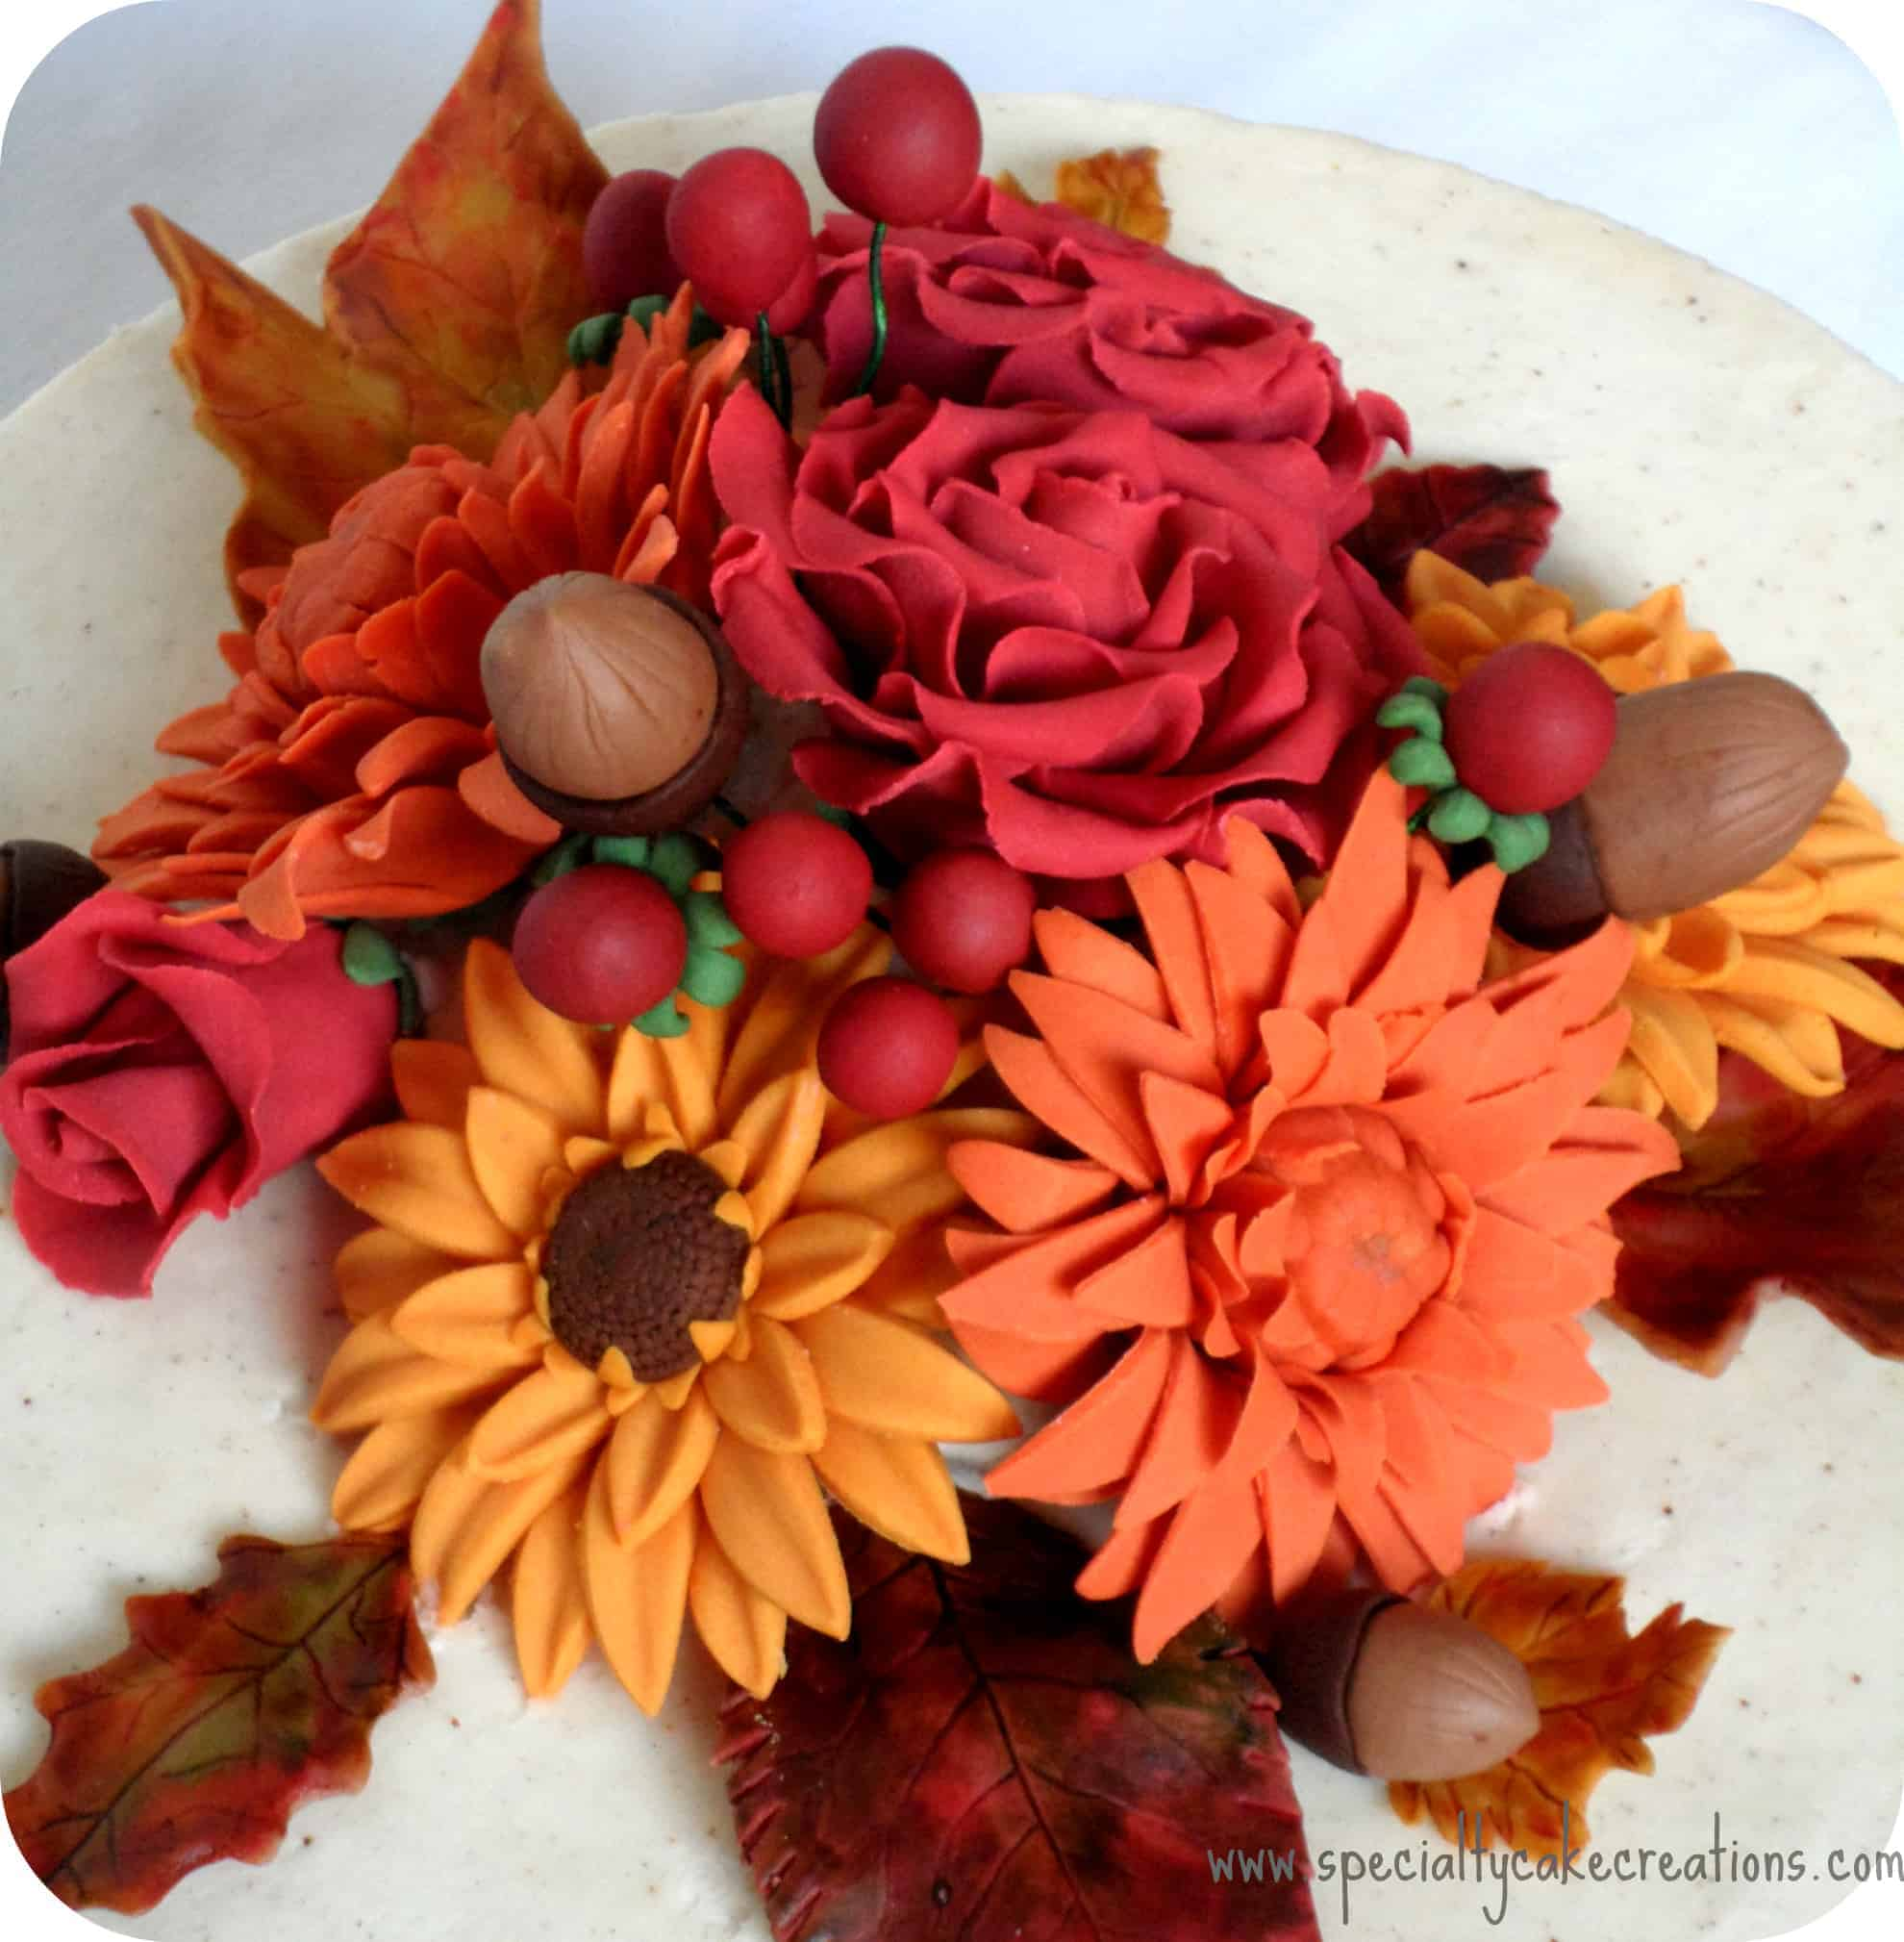 Gumpaste Flowers For Wedding Cakes: Easy Pumpkin Cake • LeelaLicious